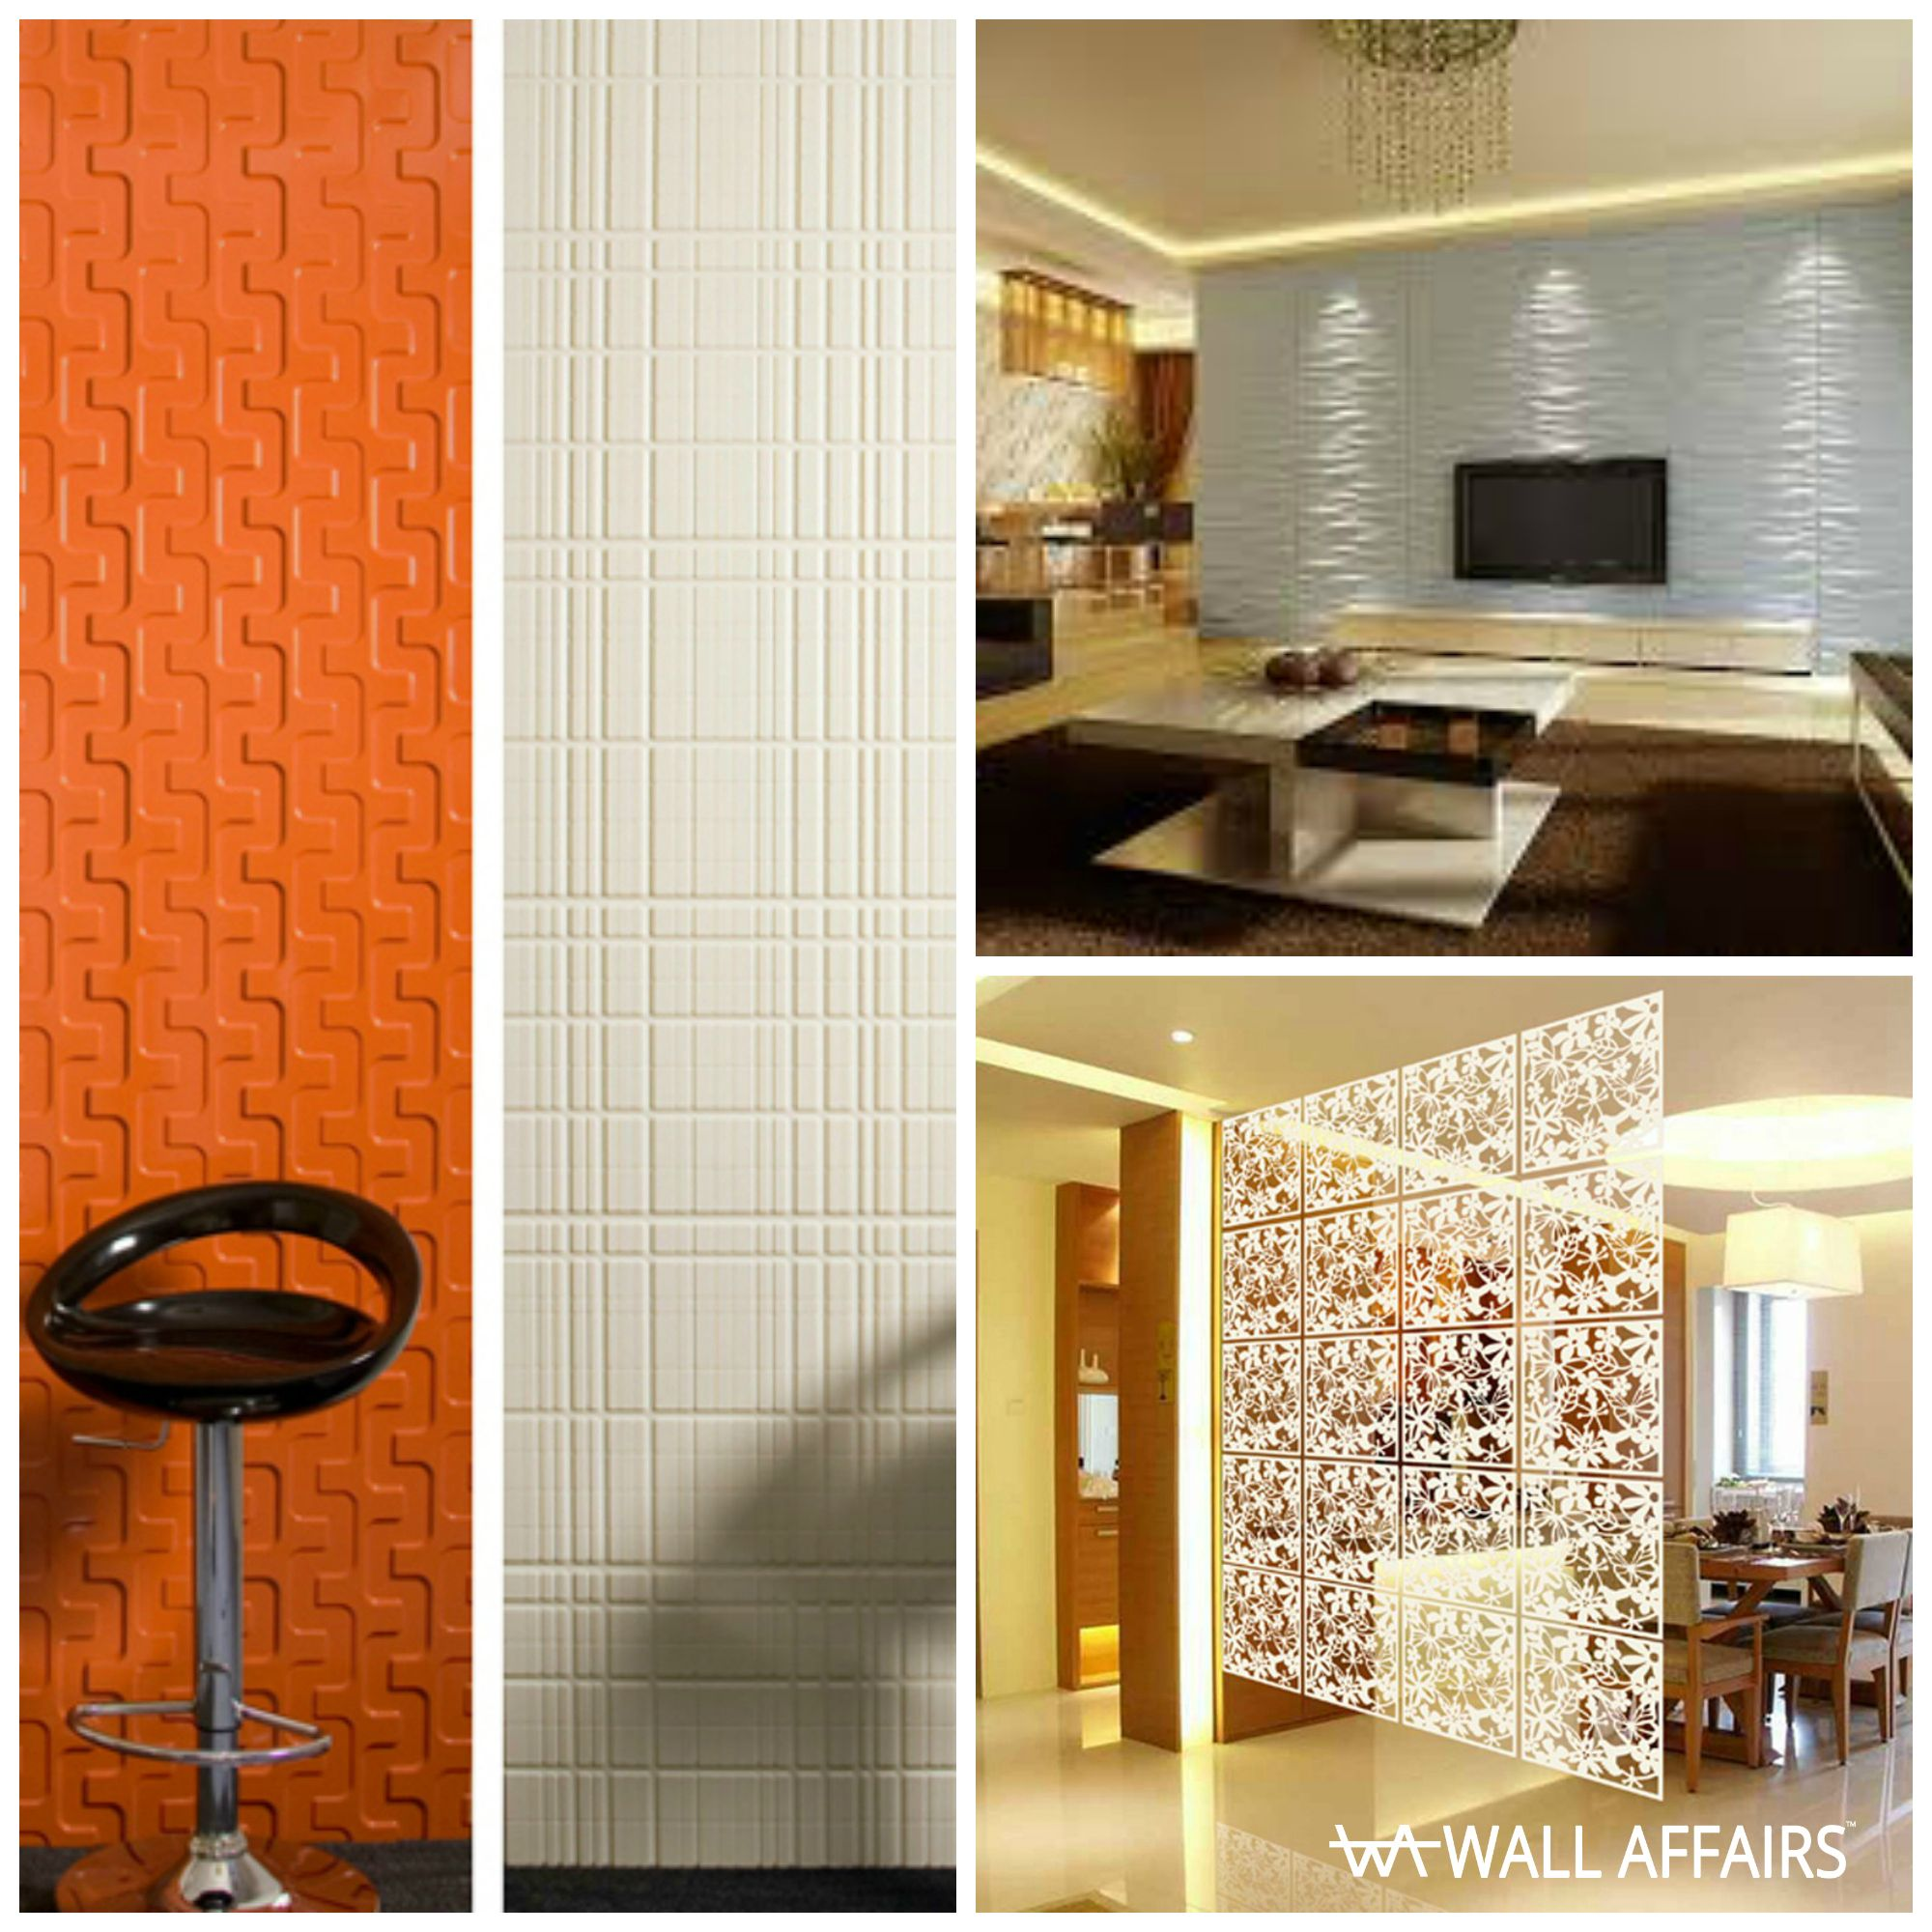 These Days There Is An Increase In Usage Of Decorative